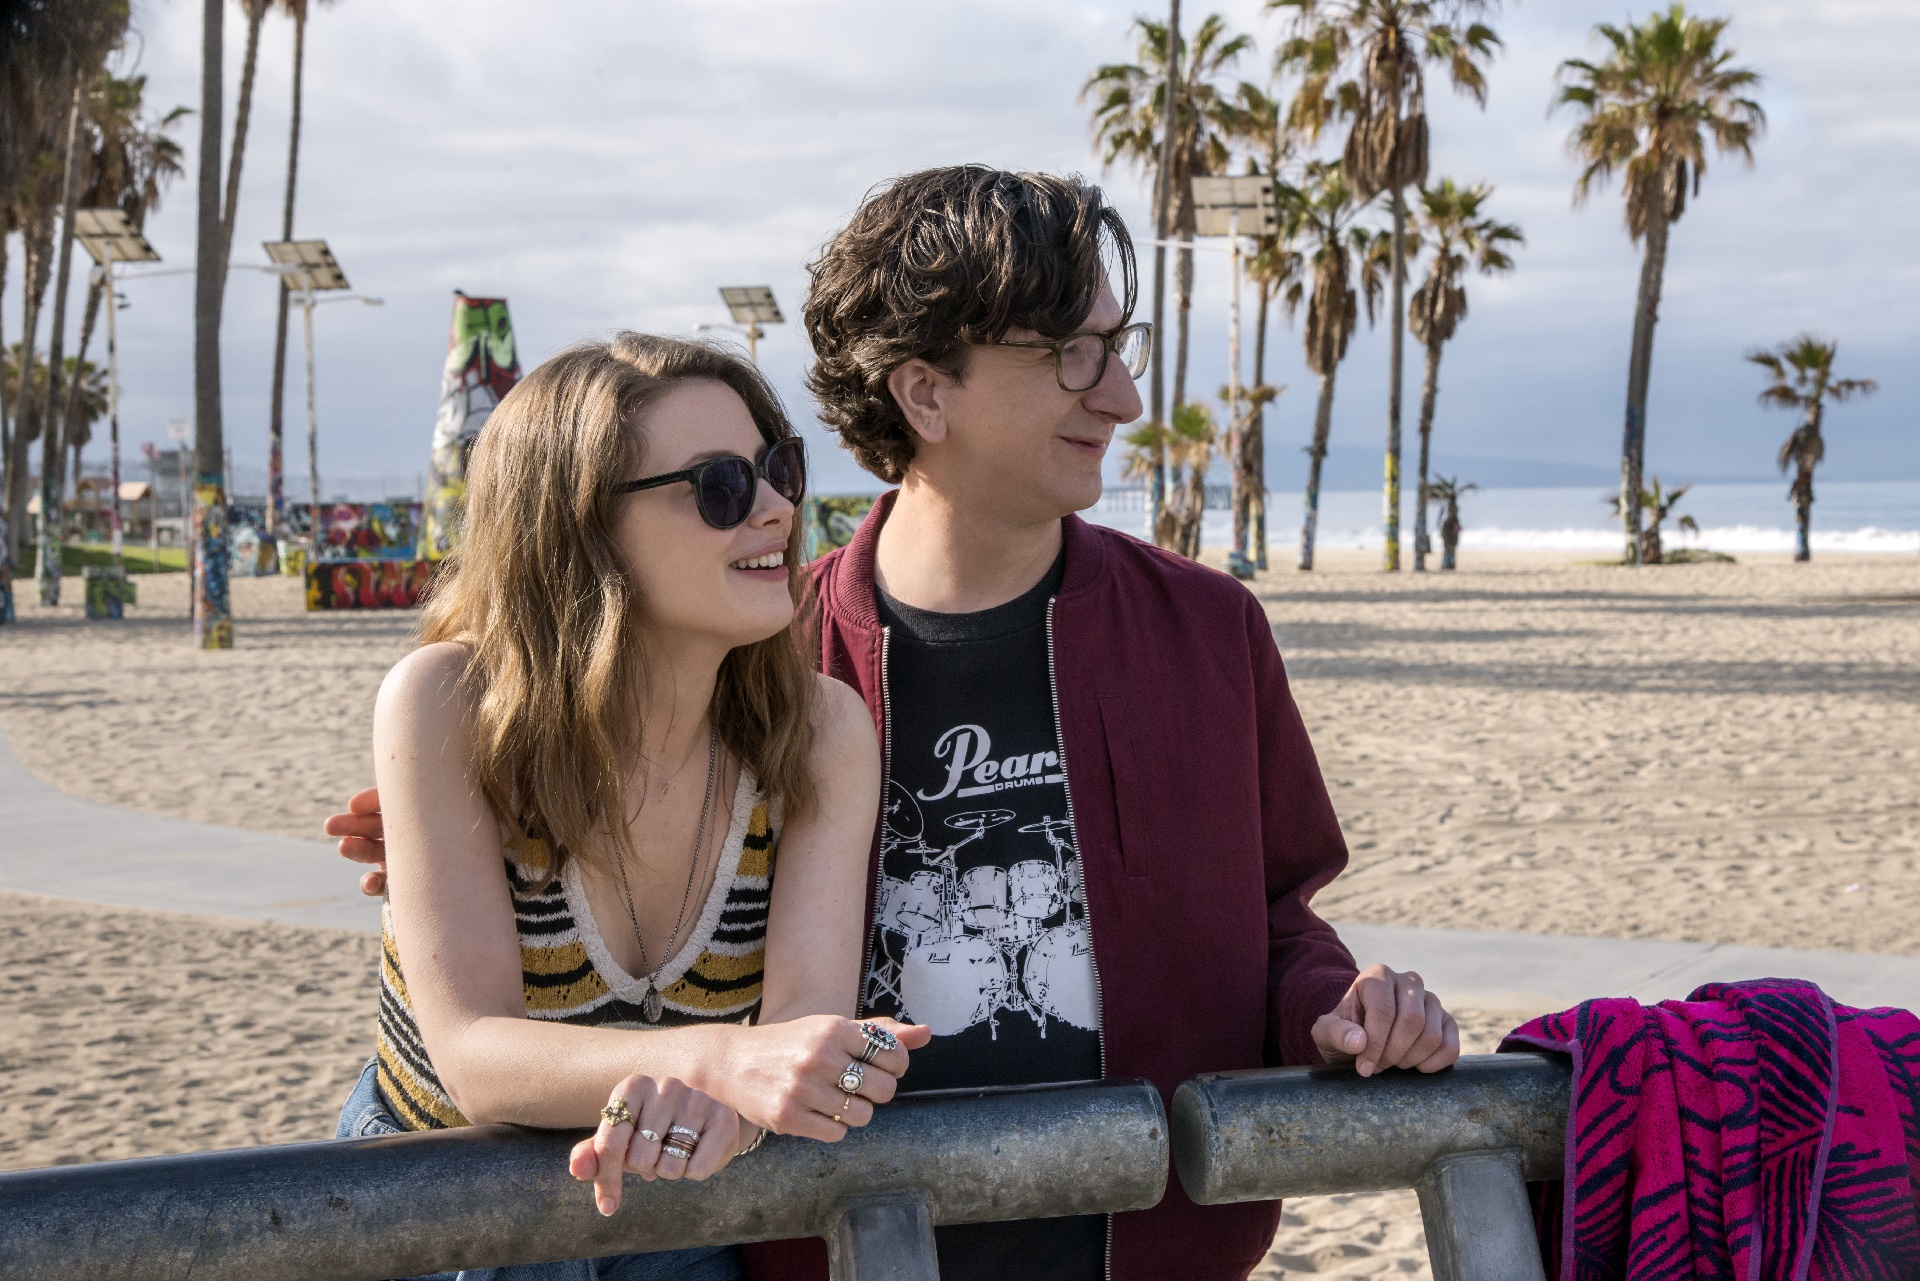 Love: una foto dei protagonisti Gillian Jacobs e Paul Rust